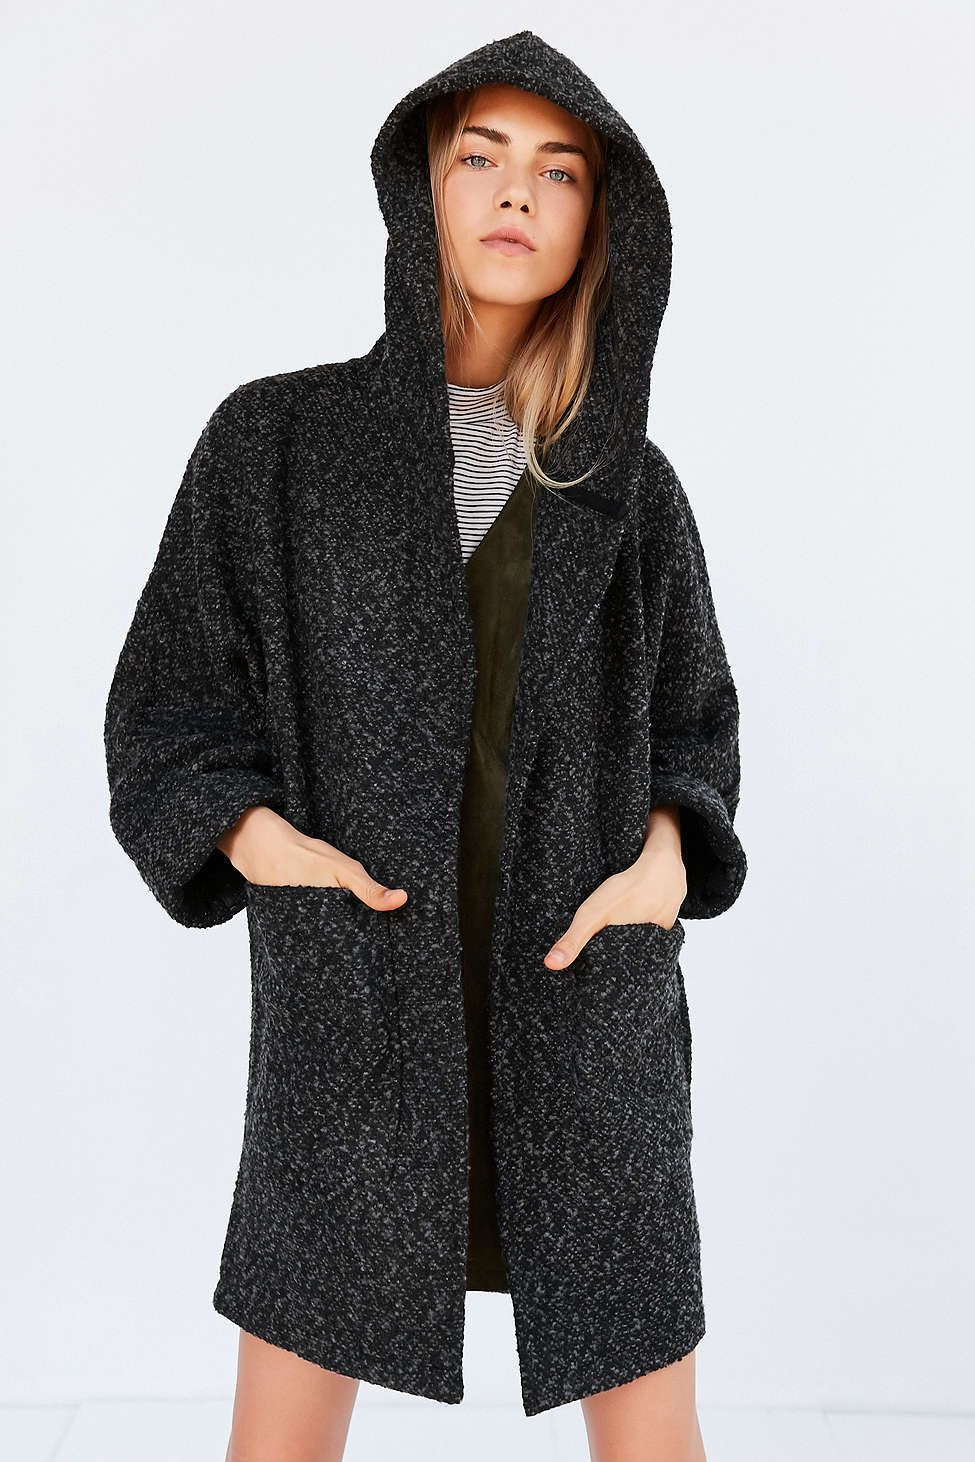 """<p>Made for Constantine/Dark Kermit cosplay.</p><p>$109, <a href=""""http://www.urbanoutfitters.com/urban/catalog/productdetail.jsp?id=40239980&amp&#x3B;category=W_APP_JACKETS_COATS"""" target=""""_blank"""" data-tracking-id=""""recirc-text-link"""">urbanoutfitters.com</a>.</p>"""